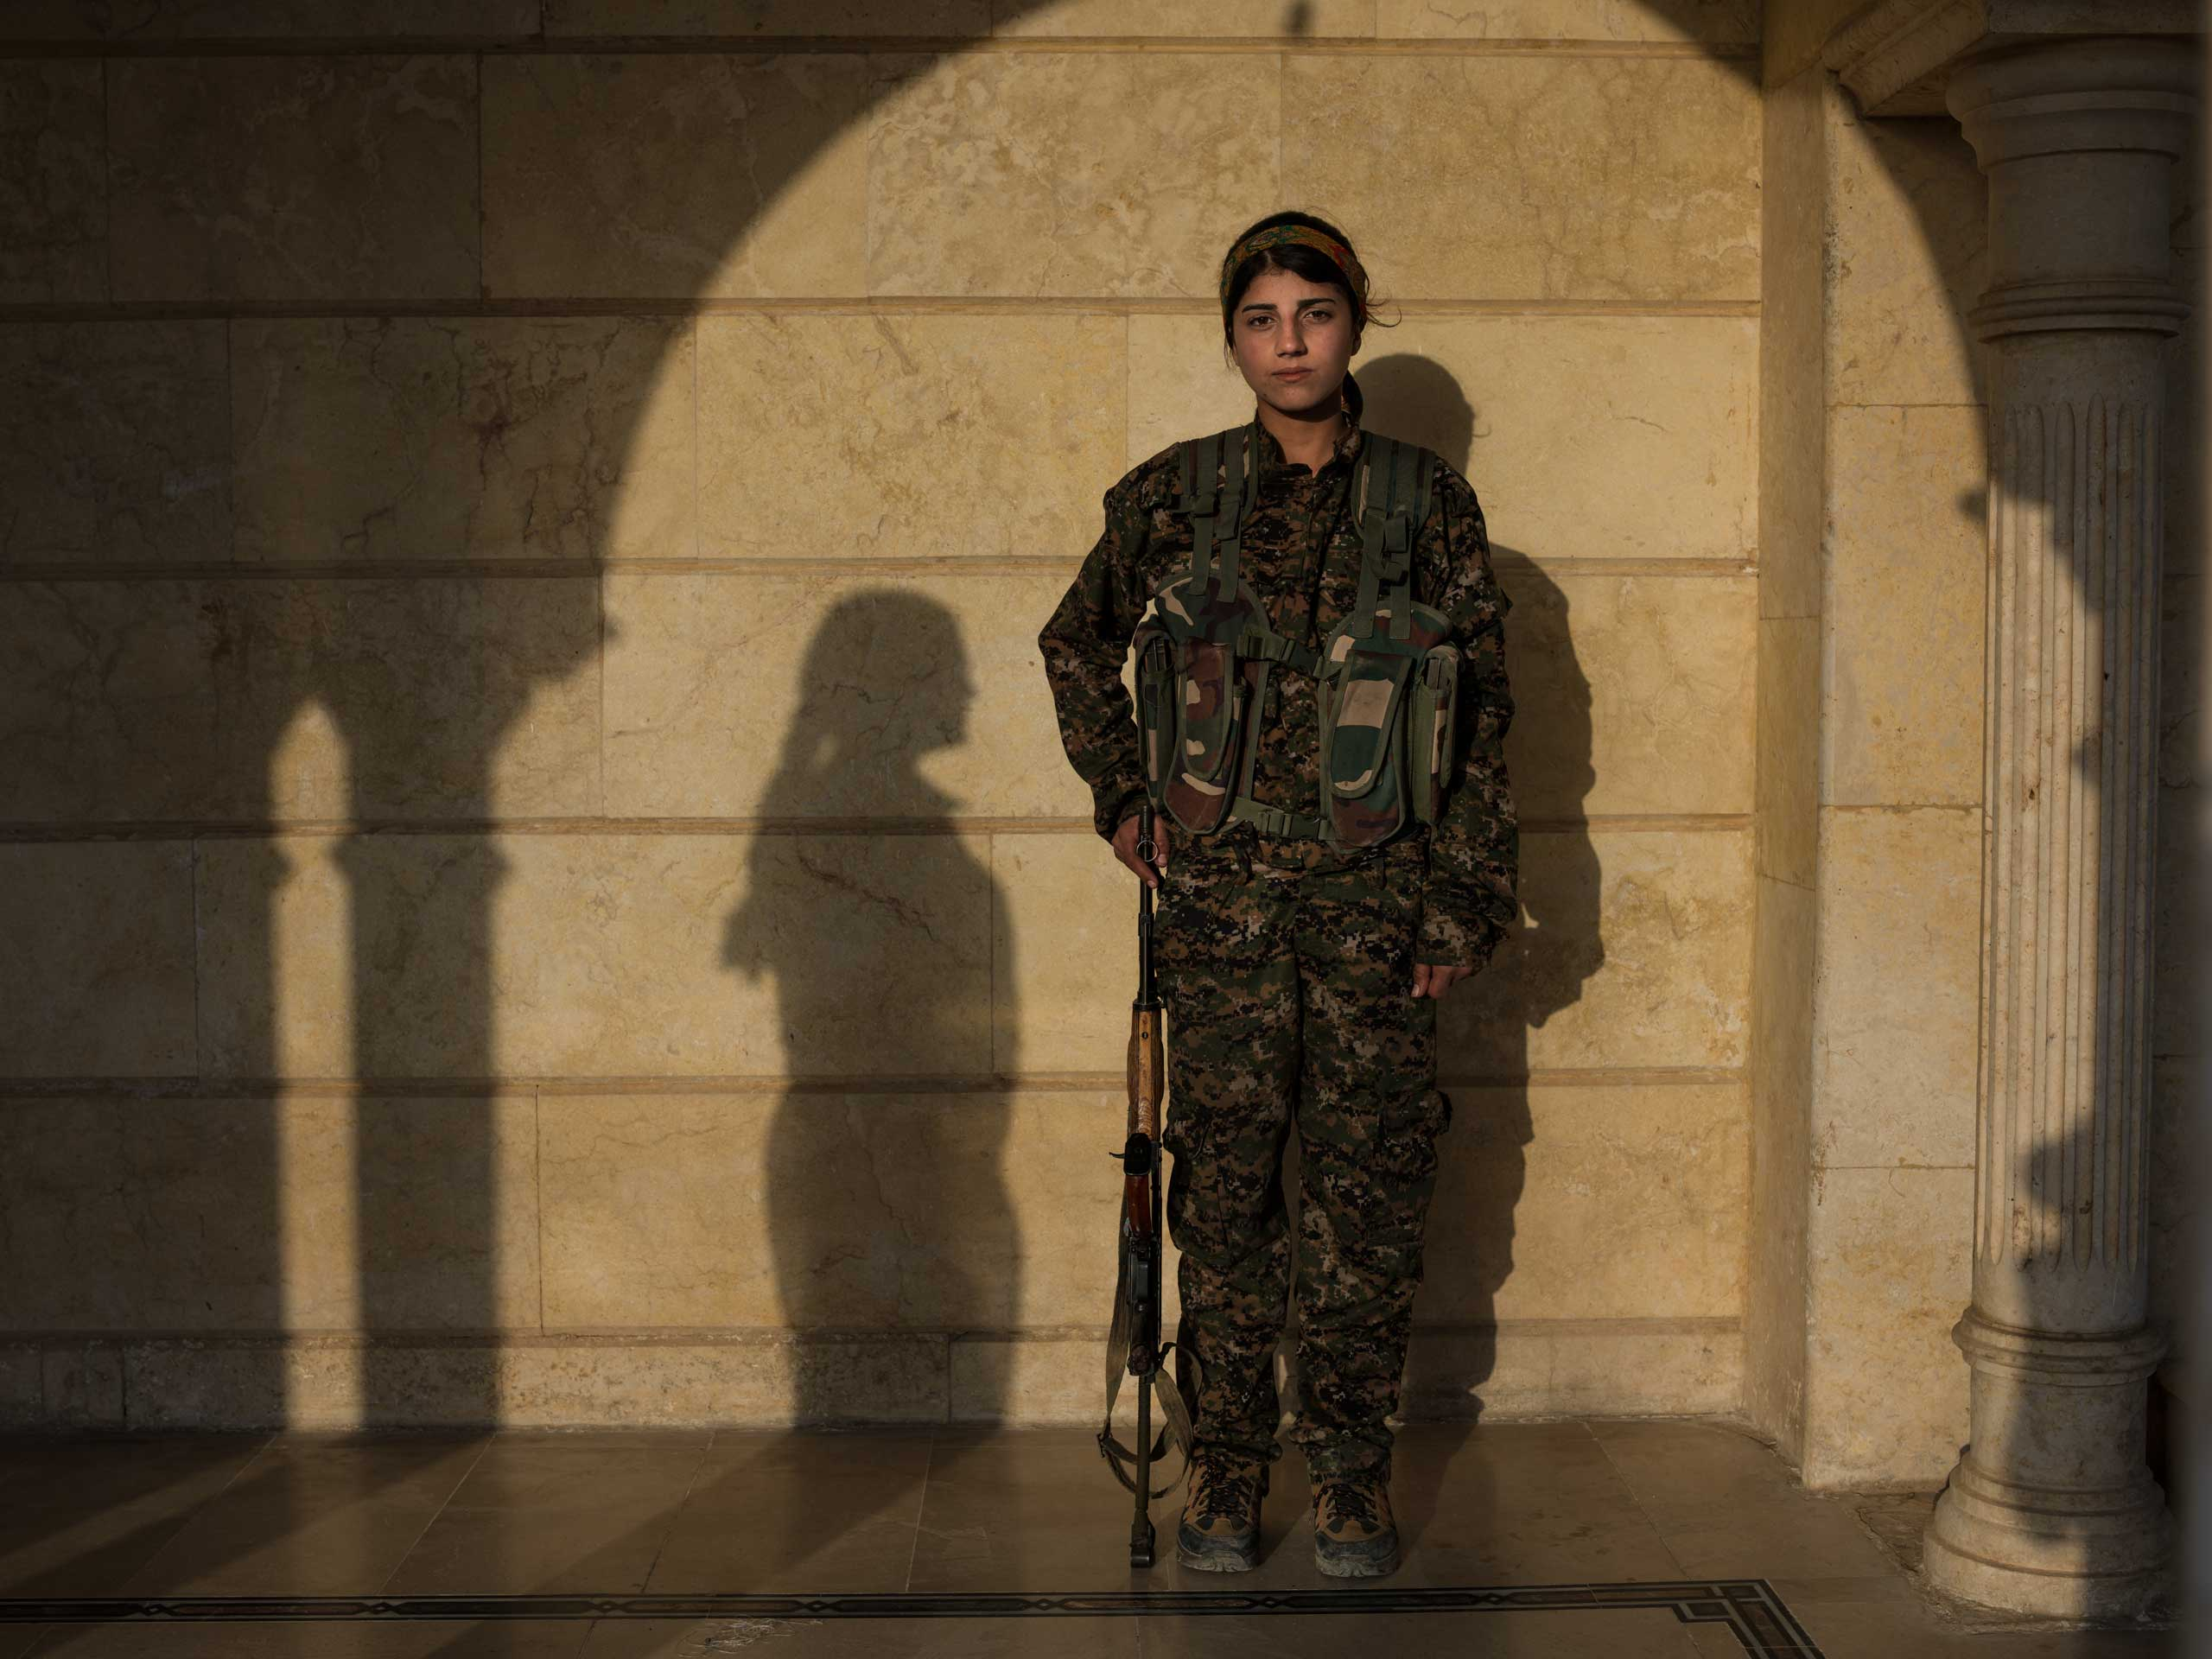 16 year-old YPJ fighter Barkhodan Kochar from Darbasi, Syria:                                 The war influenced me a lot. Before joining YPJ, whenever I asked my family about politics, they'd say 'that's not your business, you're just a girl'. But when I saw how the women of YPJ gave their lives for what they believed in, I knew that I wanted to be one of them.